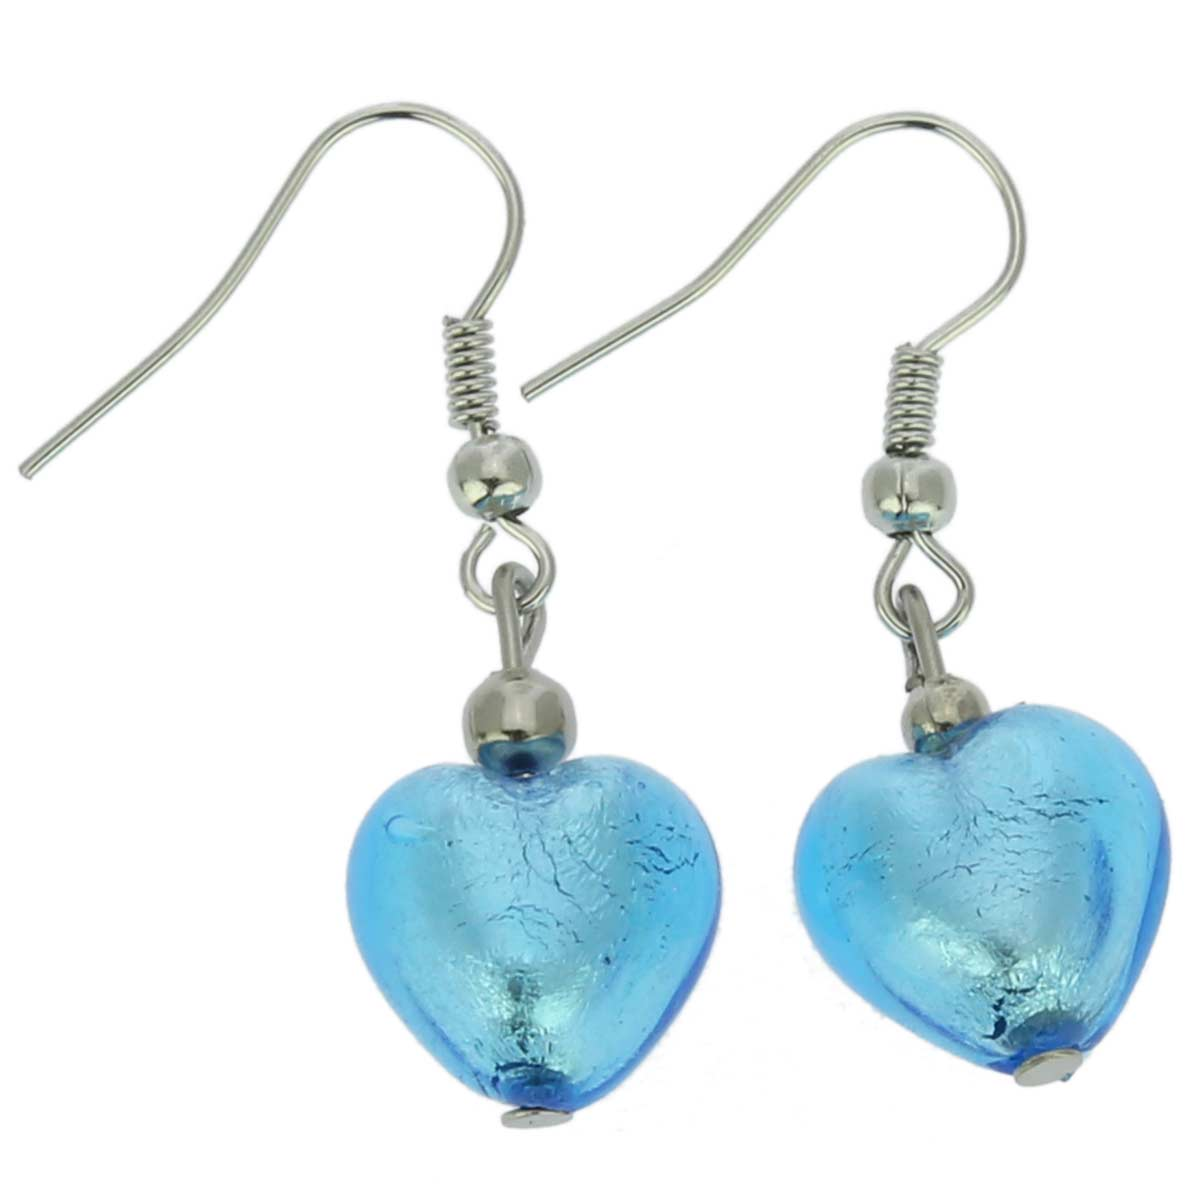 Murano Heart Earrings - Sky Blue